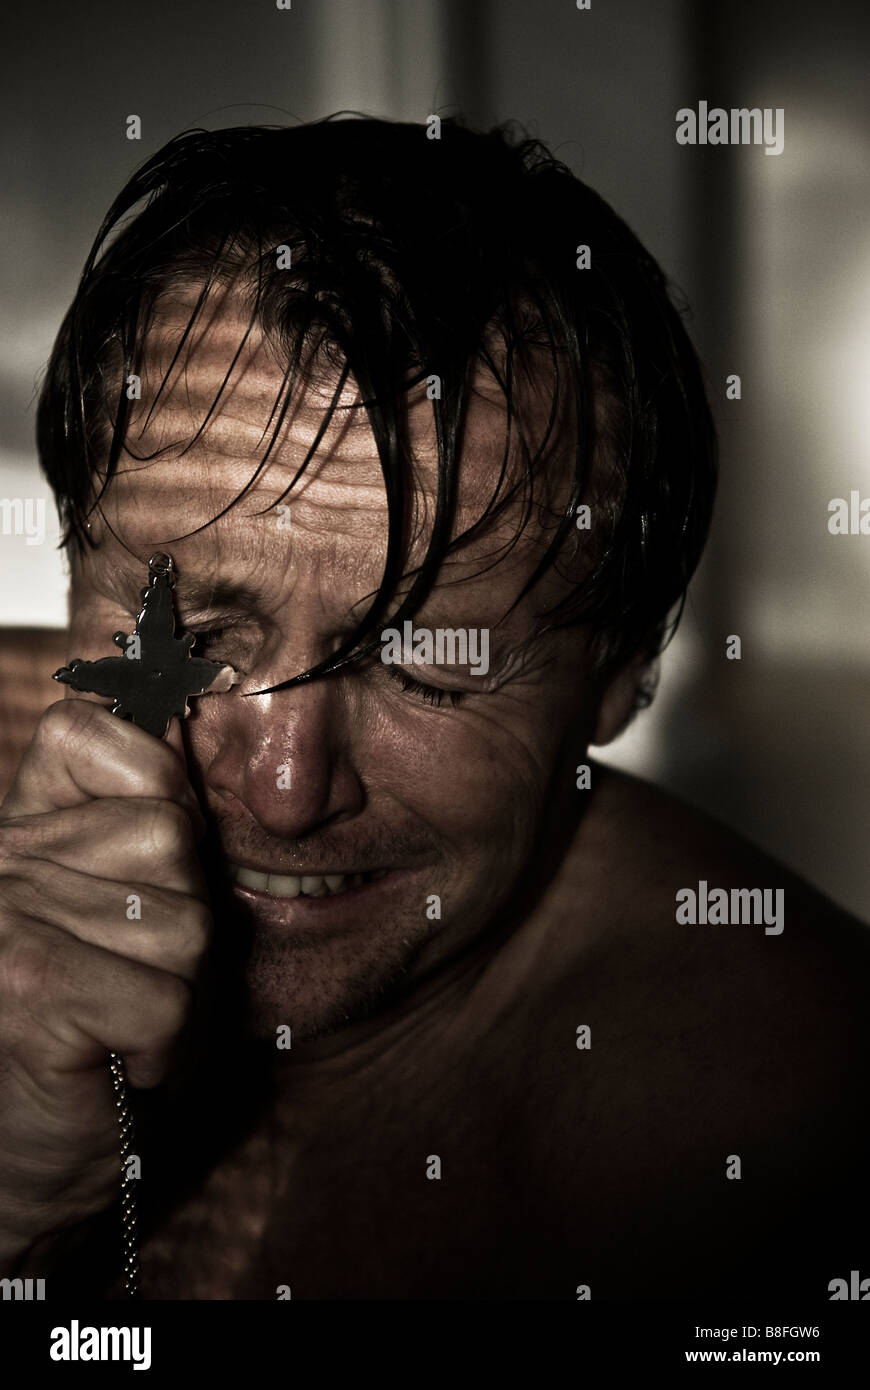 An extremely distressed and emotional man is sobbing as he holds his crucifix close to his face in hope. Stock Photo